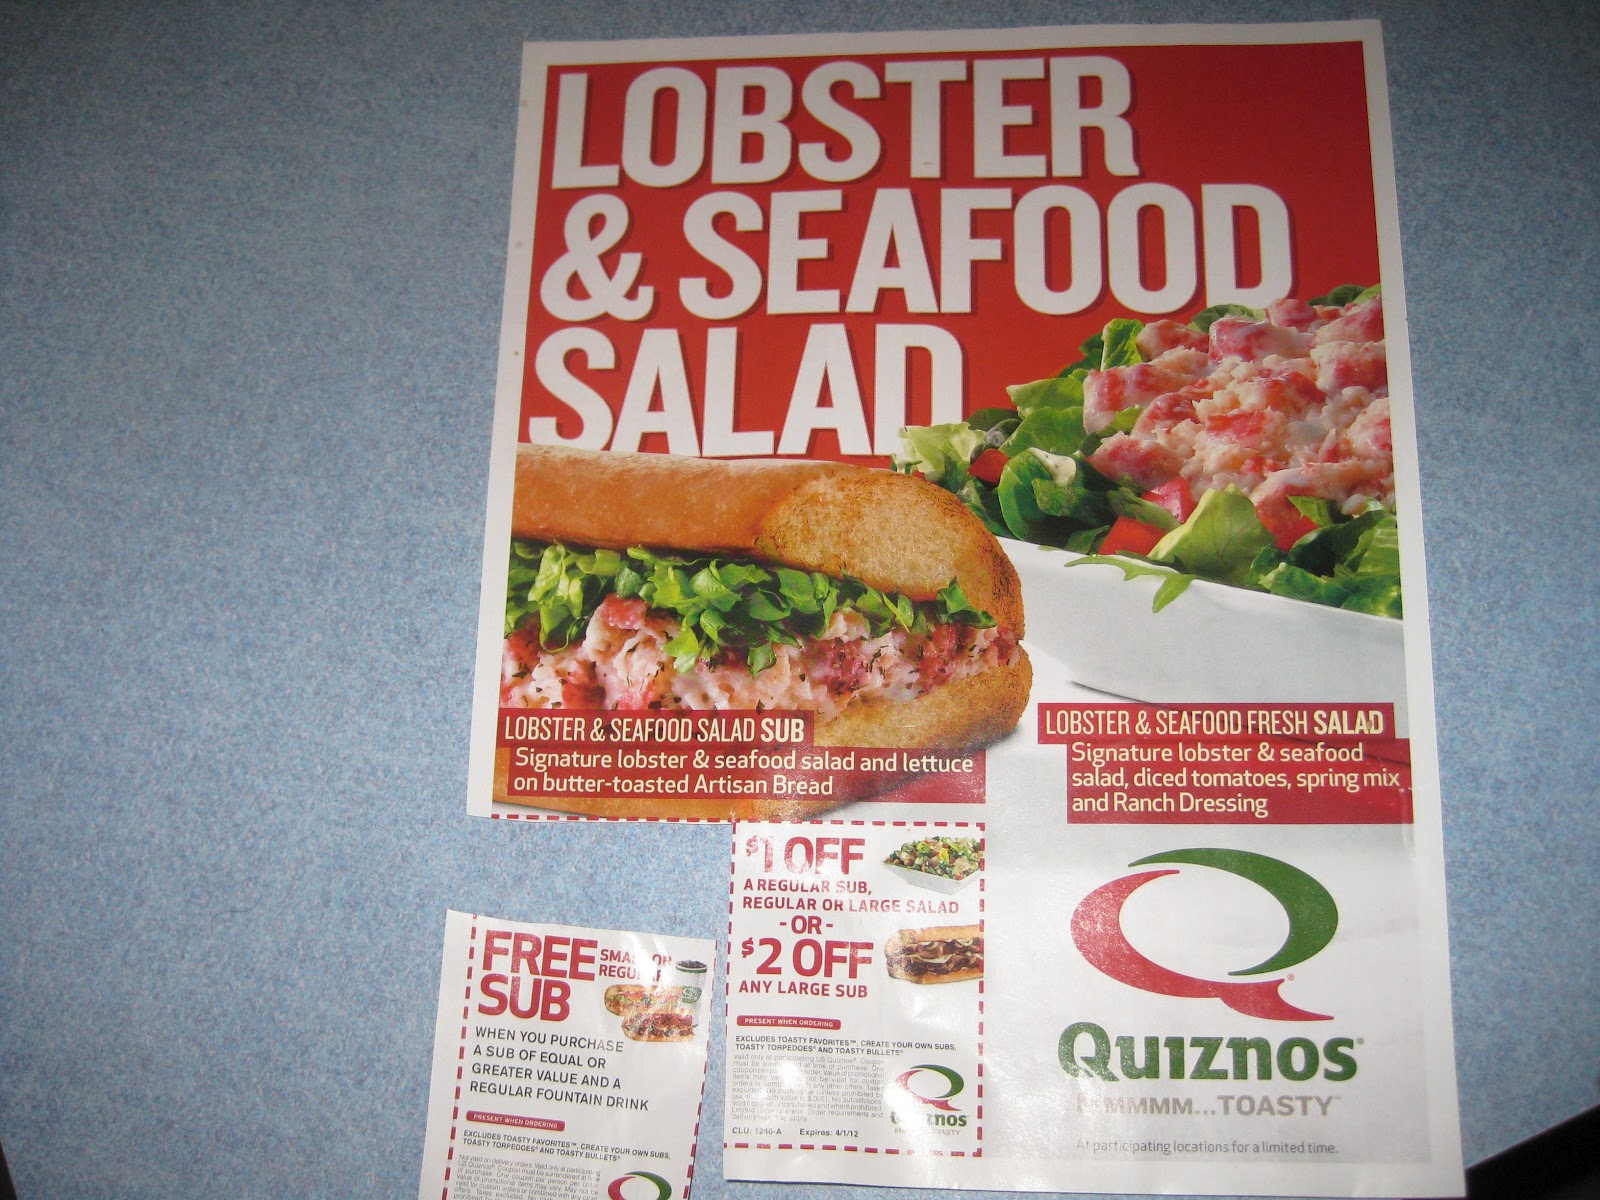 The Quizno's Lobster & Seafood Salad Club Sandwich Is Not Apletely New  Menu Item It May, However, Be A Good Thing That I Was Not Yet A Reviewer  For